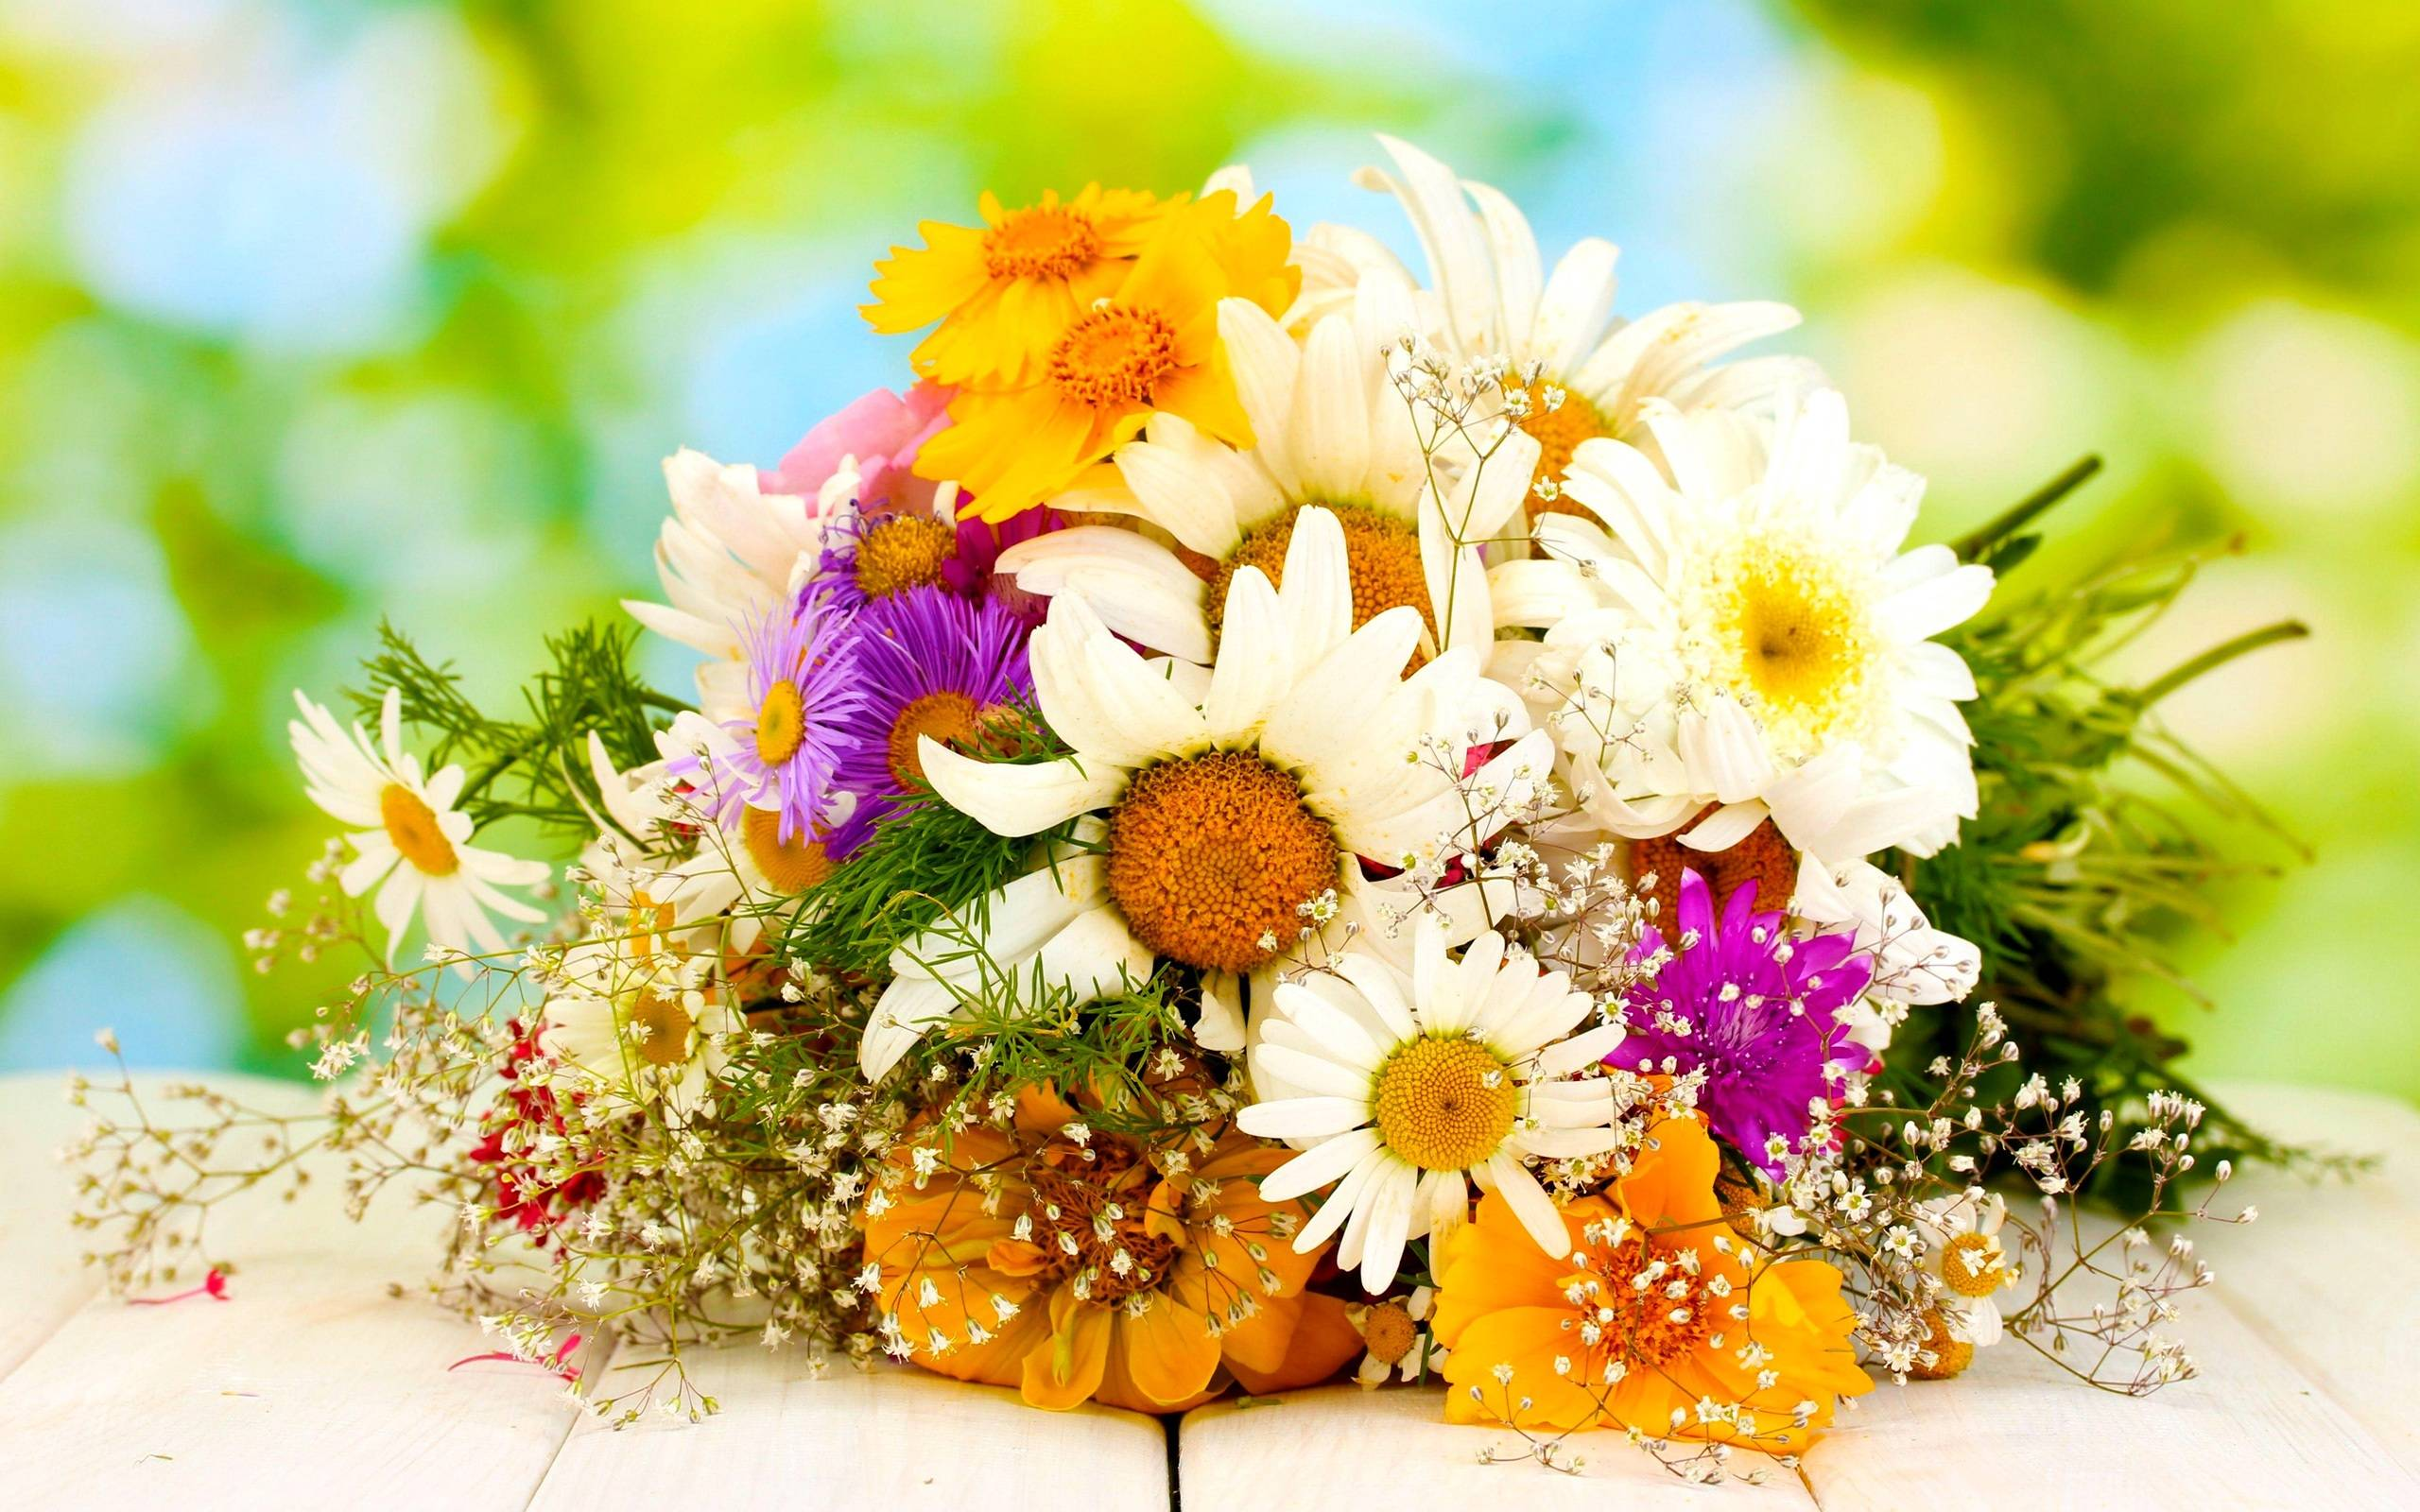 Flower bouquet wallpapers wallpaper cave flowers bouquet wallpapers pictures izmirmasajfo